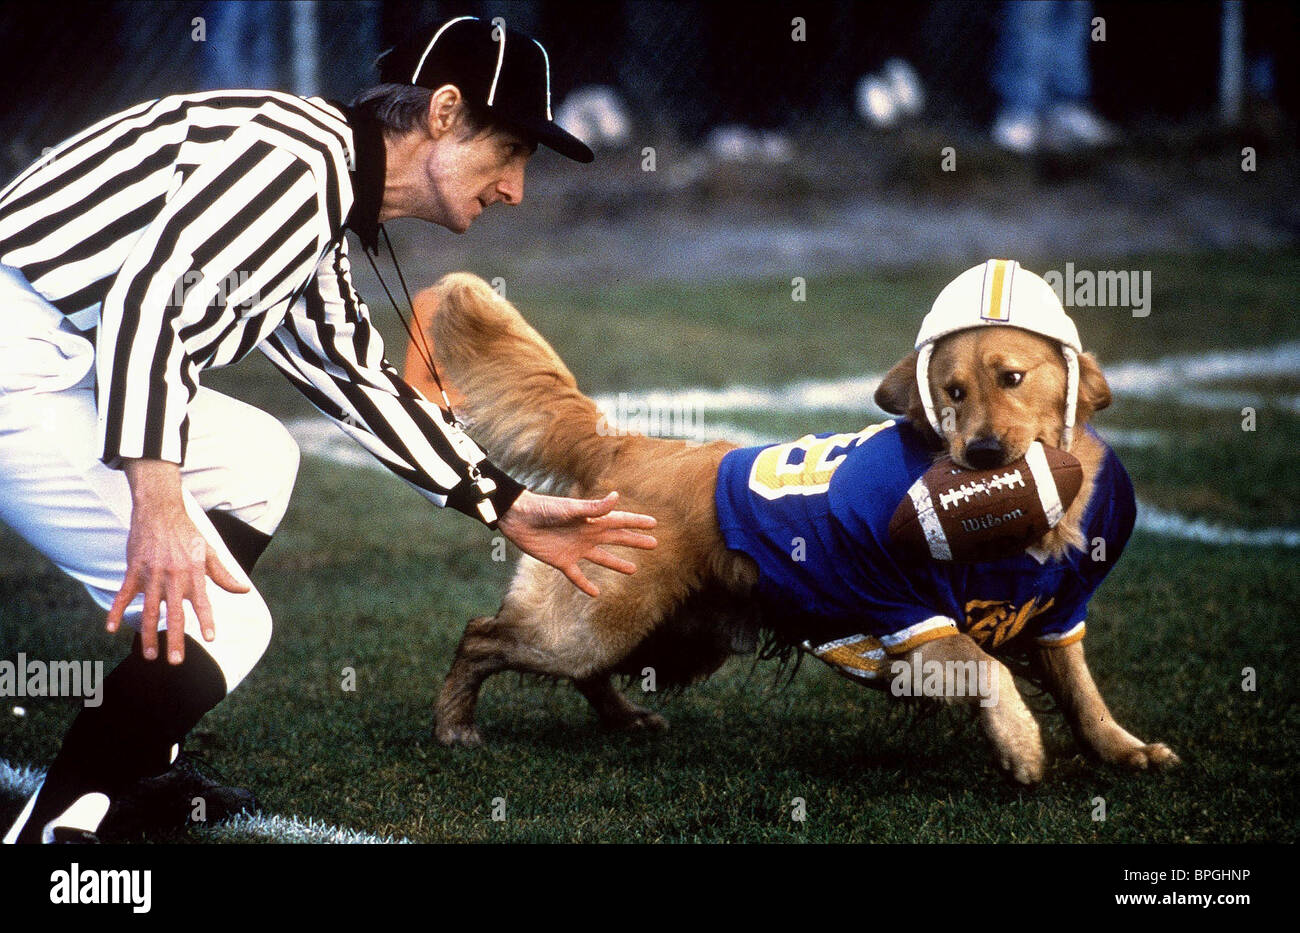 REFEREE & BUDDY AIR BUD: GOLDEN RECEIVER; AIR BUD 2 (1998) - Stock Image